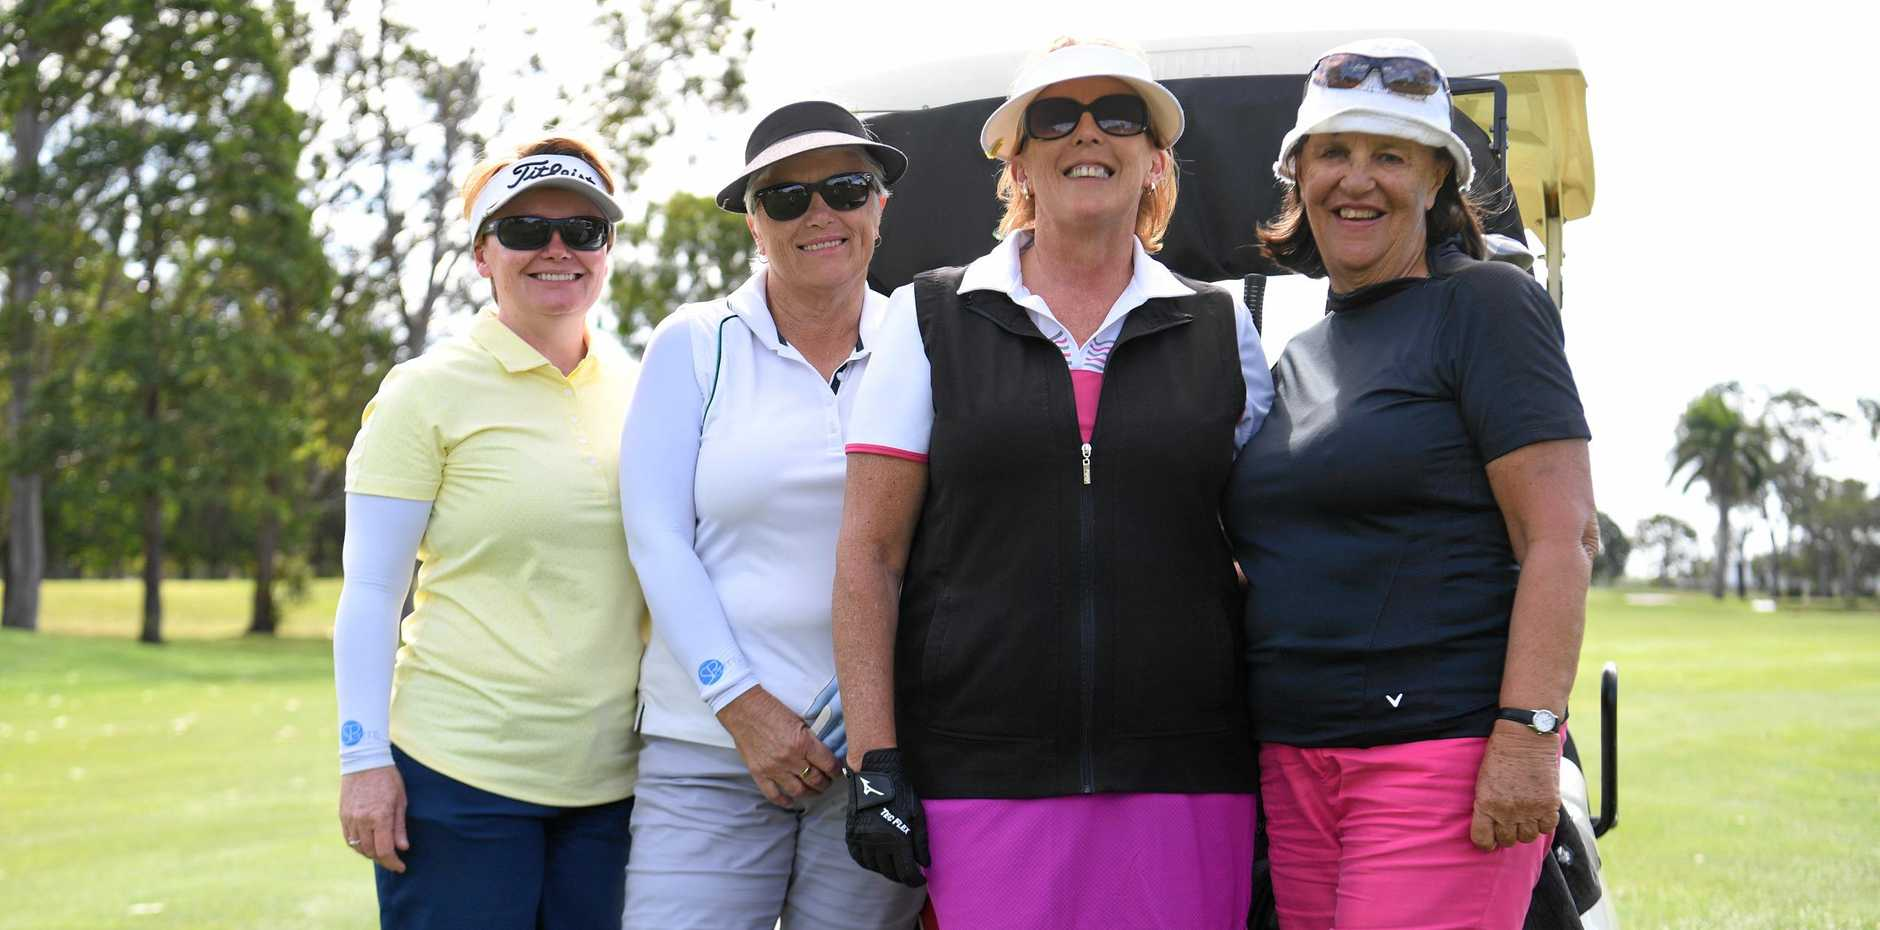 STRONG CONTENDERS: Sunshine Coast golfers Liv Dolan, Paula Jeffrey, Jennifer Eborall and Judy Meager play at Bundaberg Golf Course ahead of the Queensland Women's Country Championships that start today.